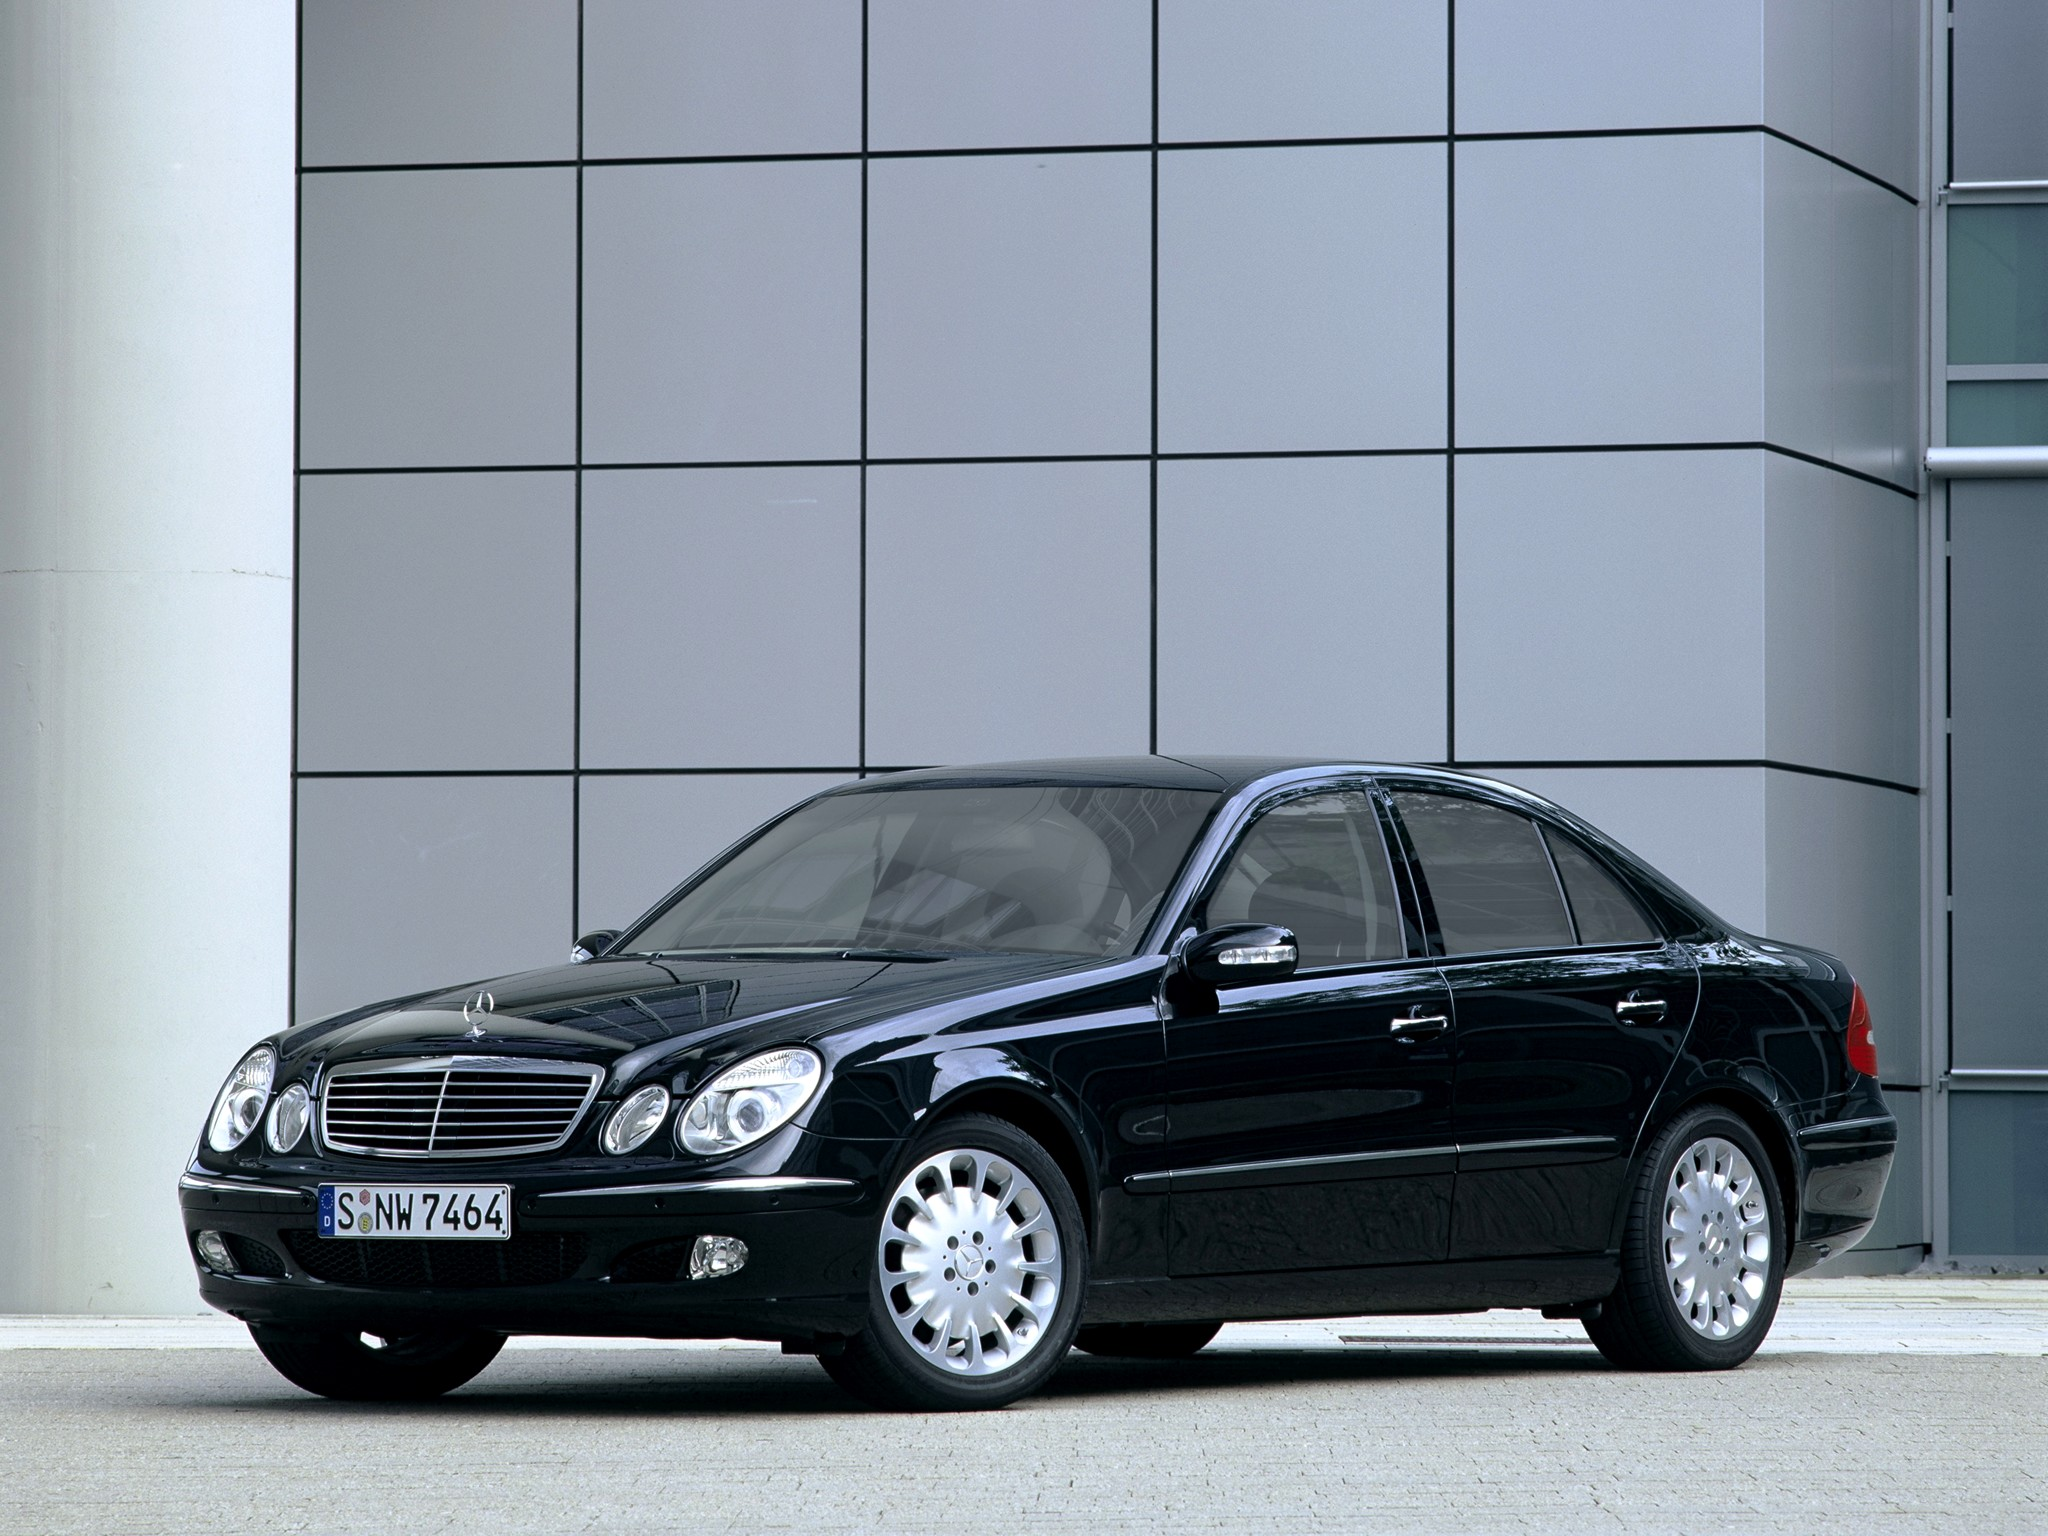 2006 Armored Mercedes Benz E-Klasse Guard W211 luxury h ...